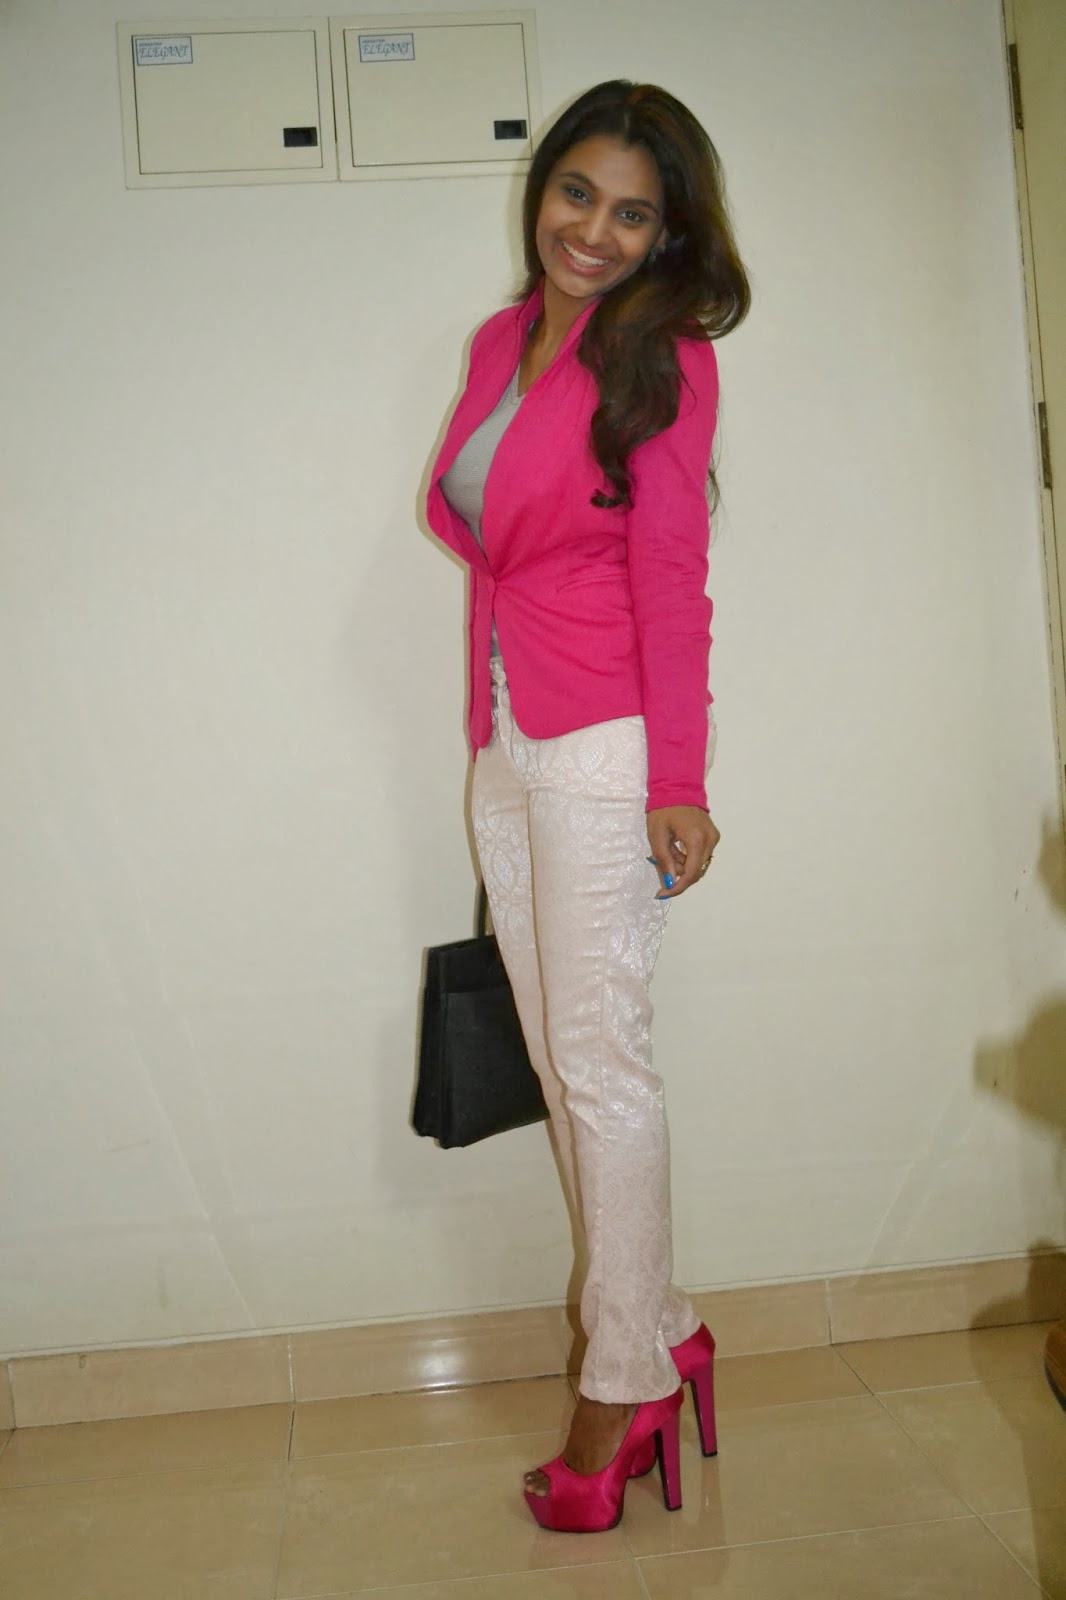 Anusha Outfitter Bright fall outfit Hot pink blazer and dressy pants